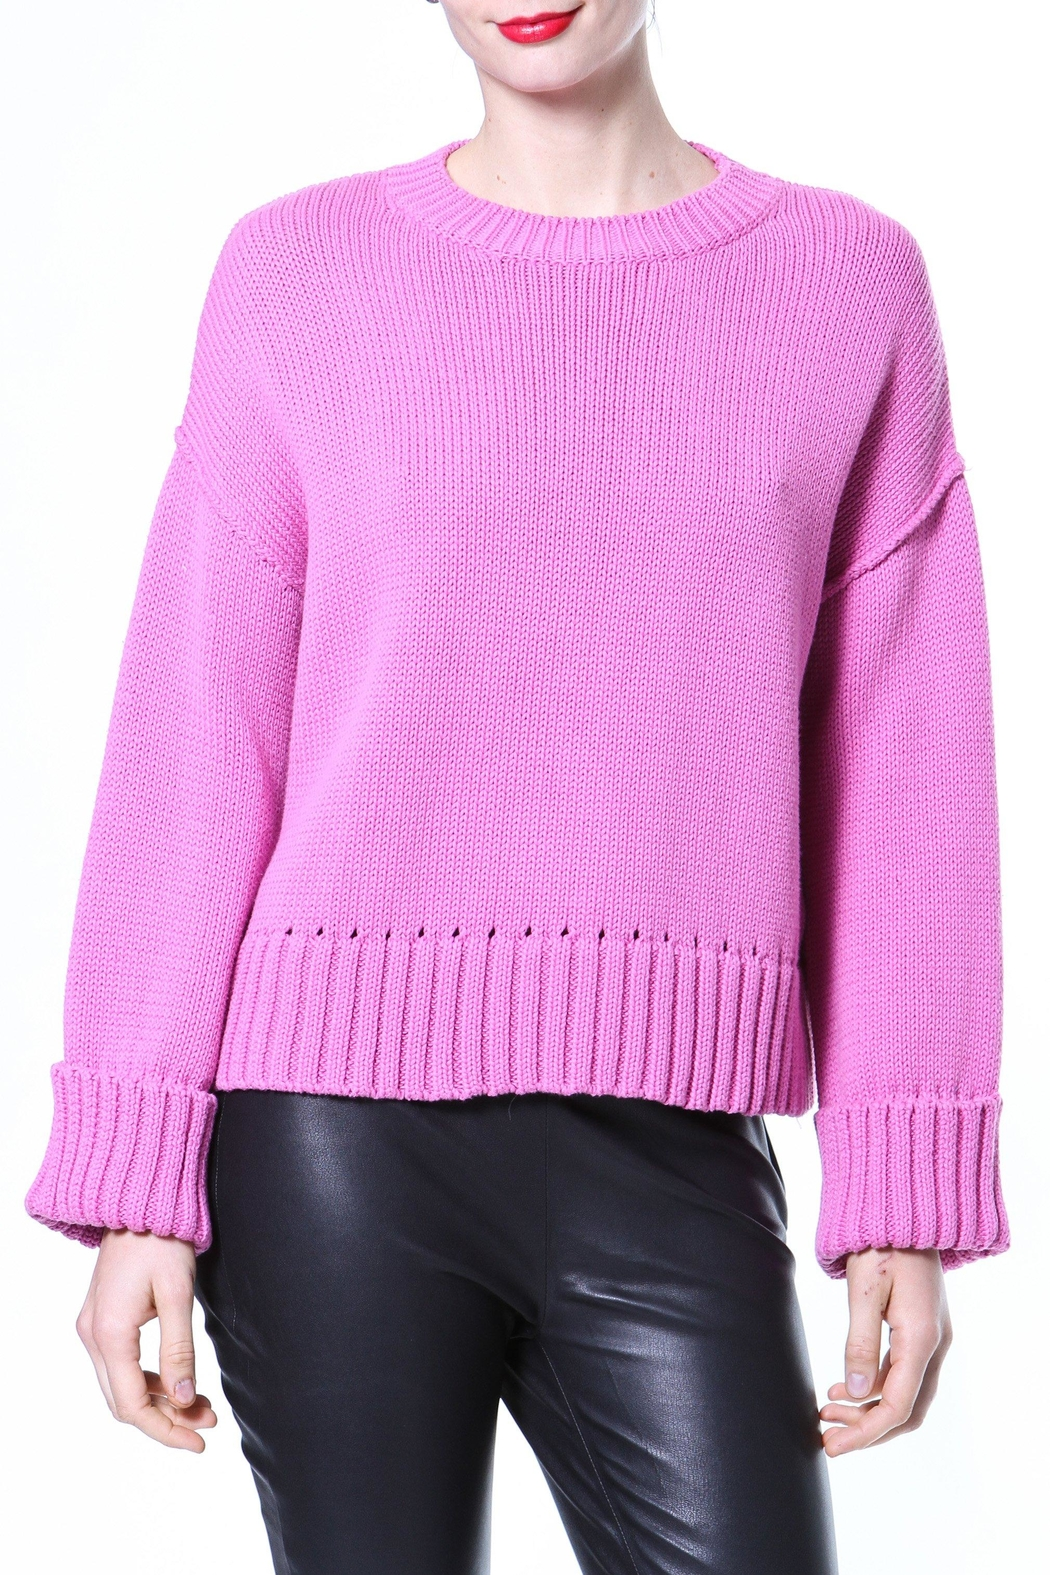 Madonna & Co Pink Ribbed Trim Sweater - Main Image